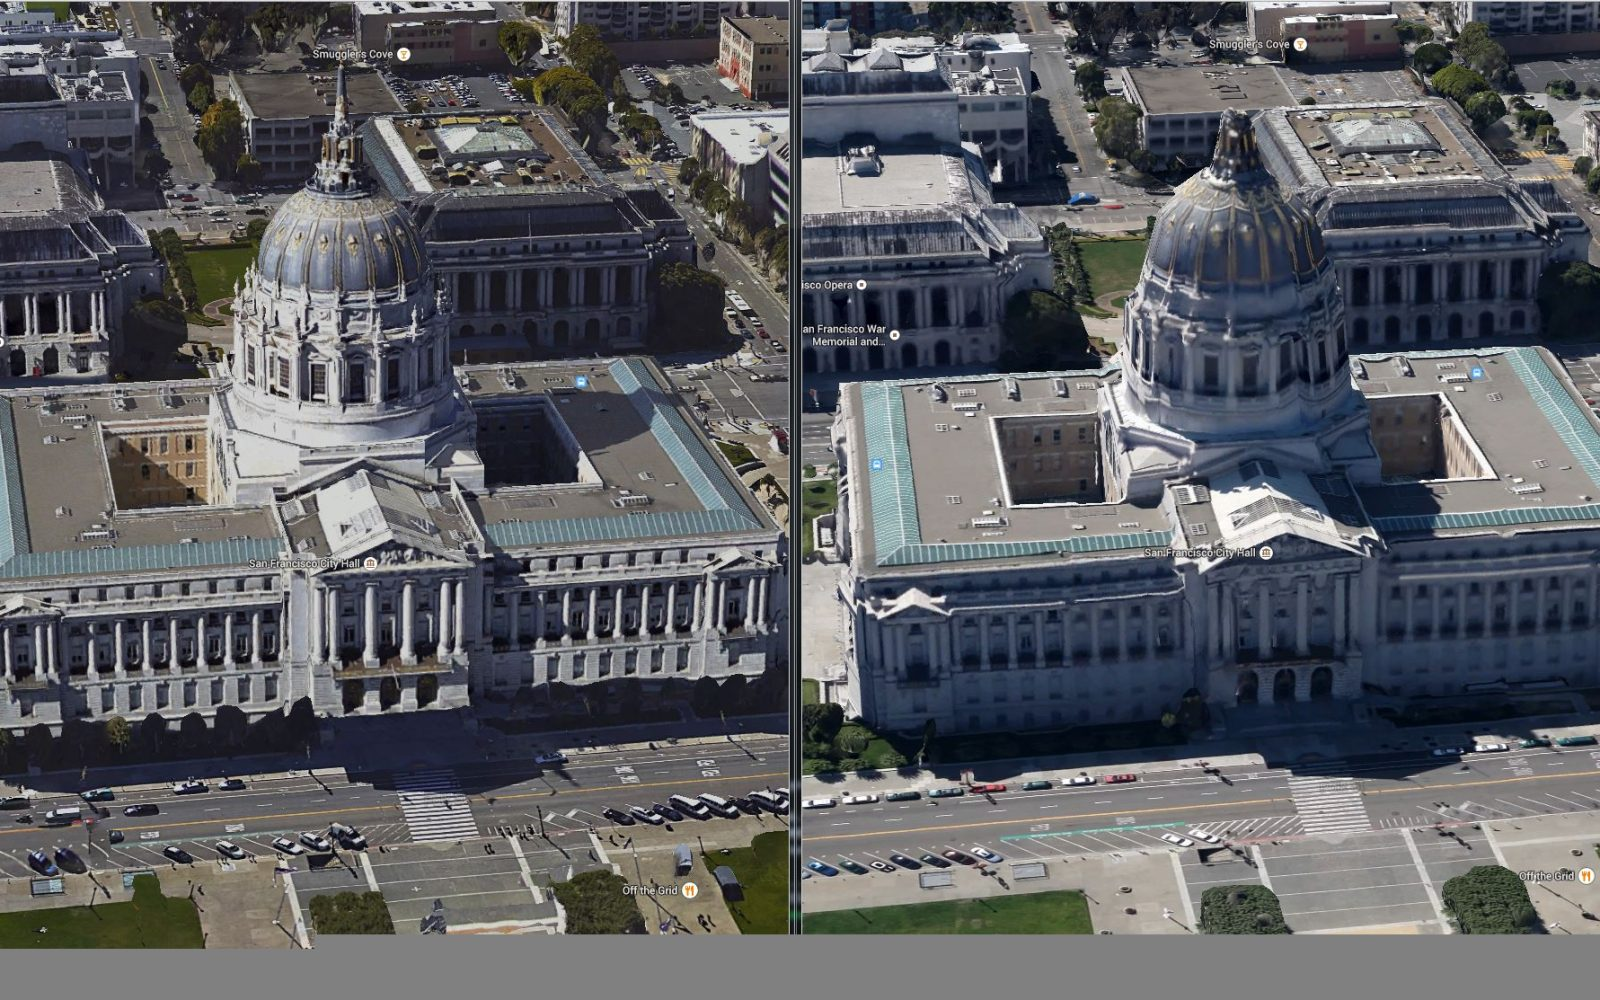 Google Earth and Maps get new 3D imagery for San Francisco ... on google maps aerial satellite view, google maps helicopter view, google earth live satellite view, google earth street view usa,